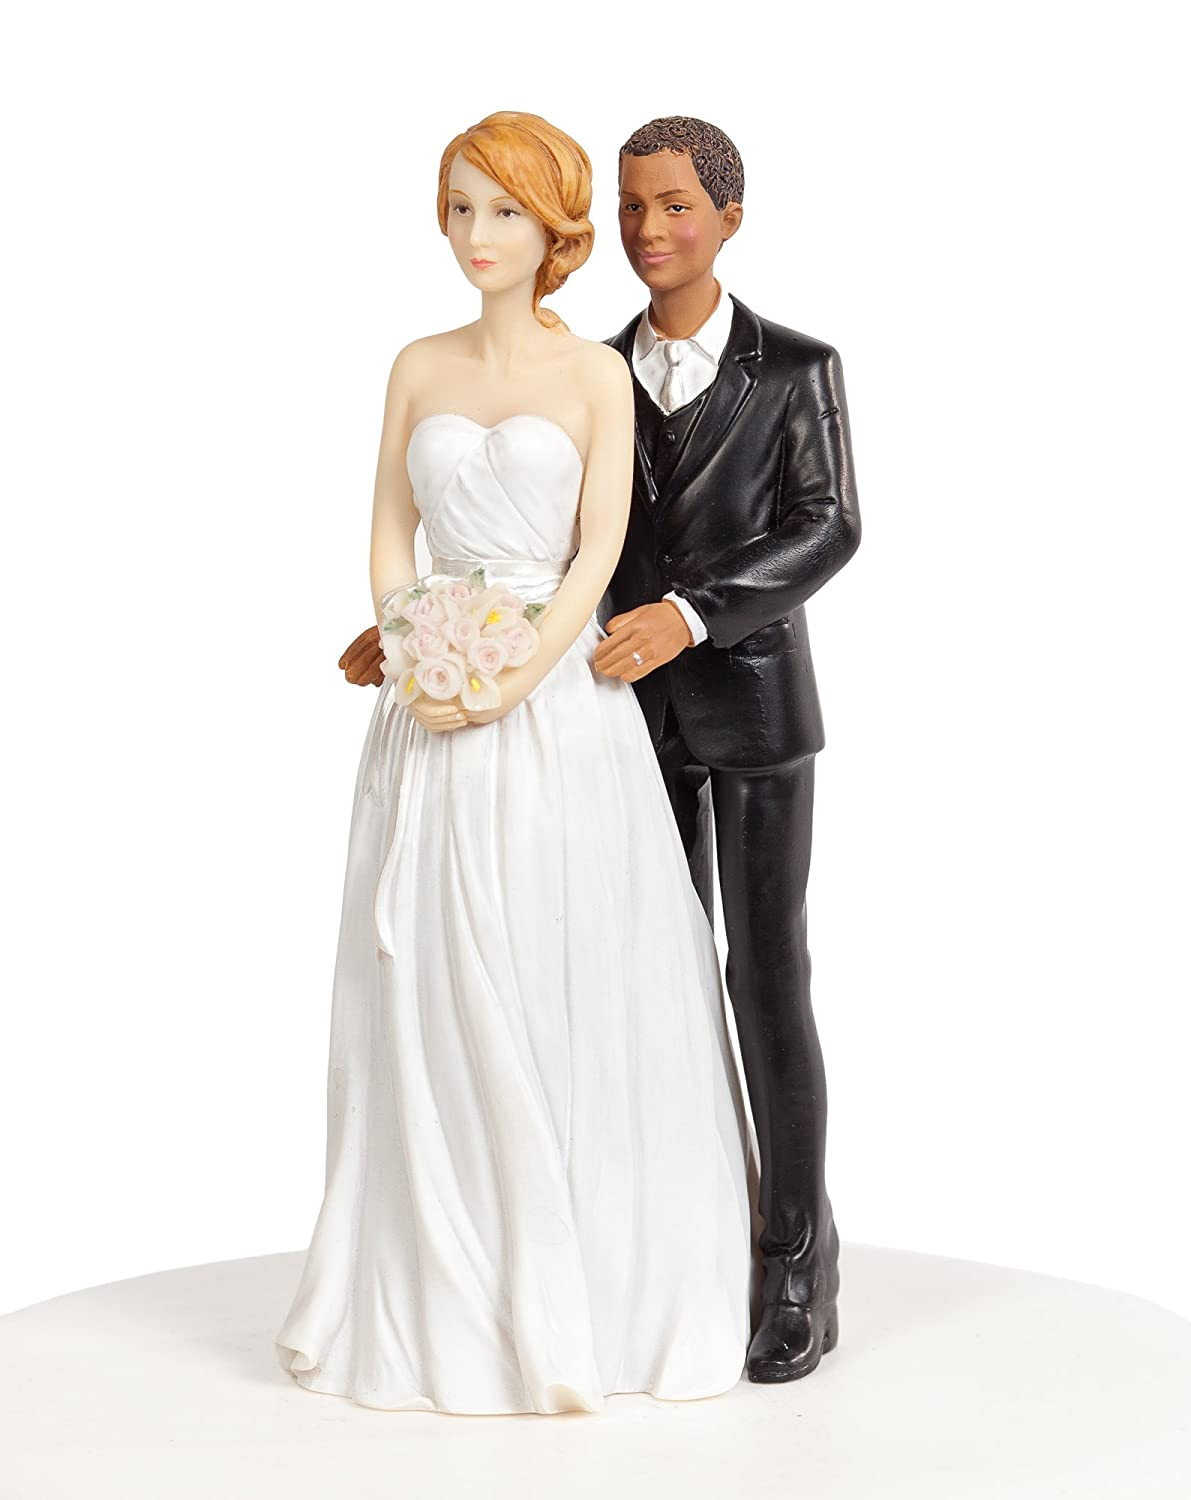 Amazon Chic Interracial Wedding Cake Topper